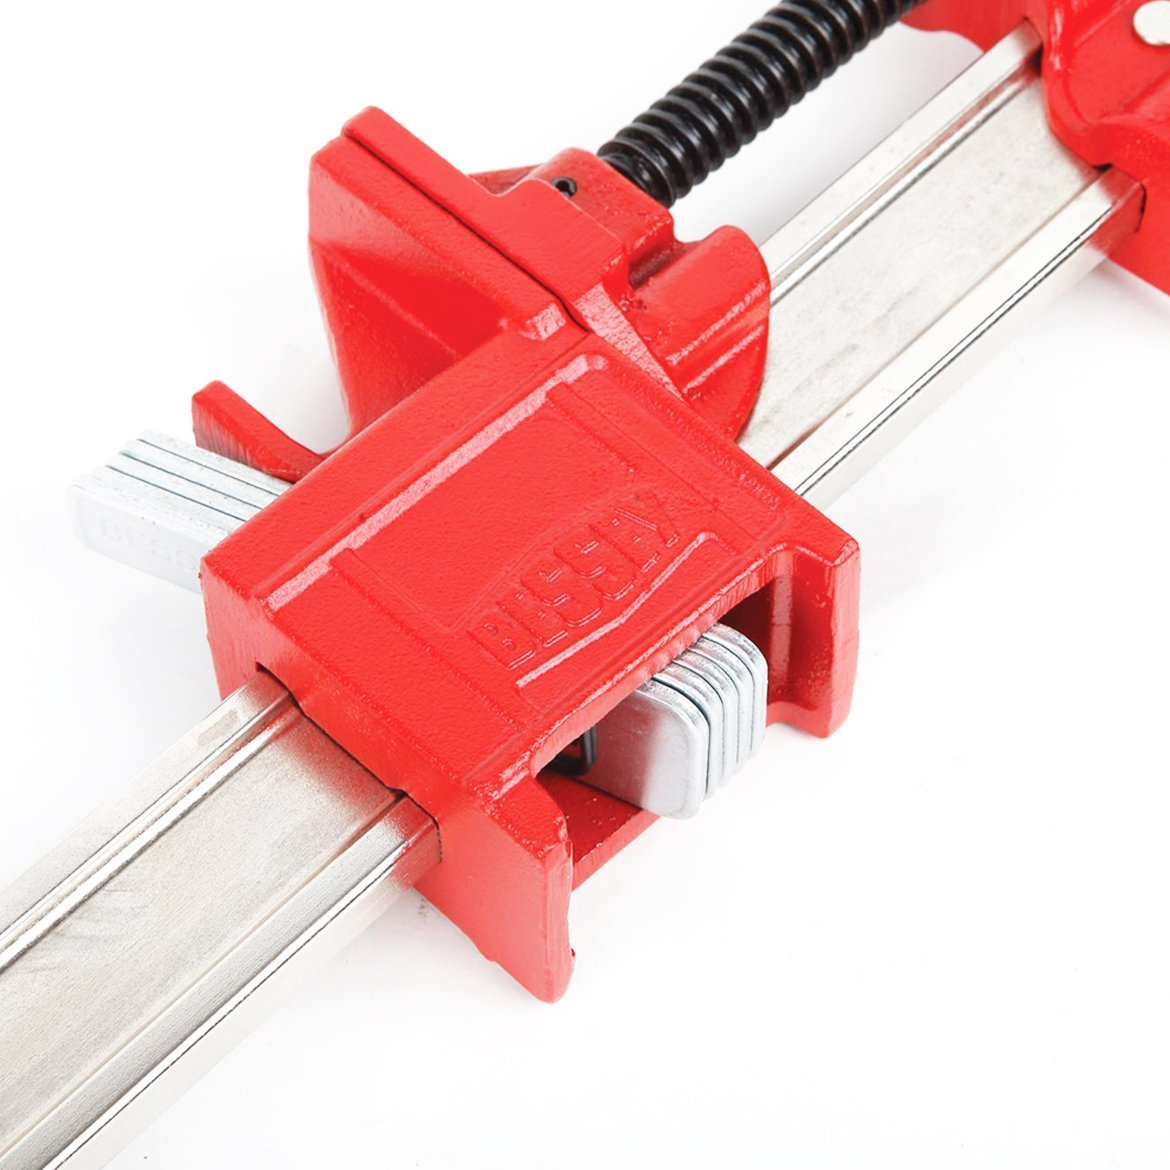 One (1) Pair BESSEY 48'' Heavy-Duty IBeam Bar Clamps for Woodworking by Bessey (Image #3)